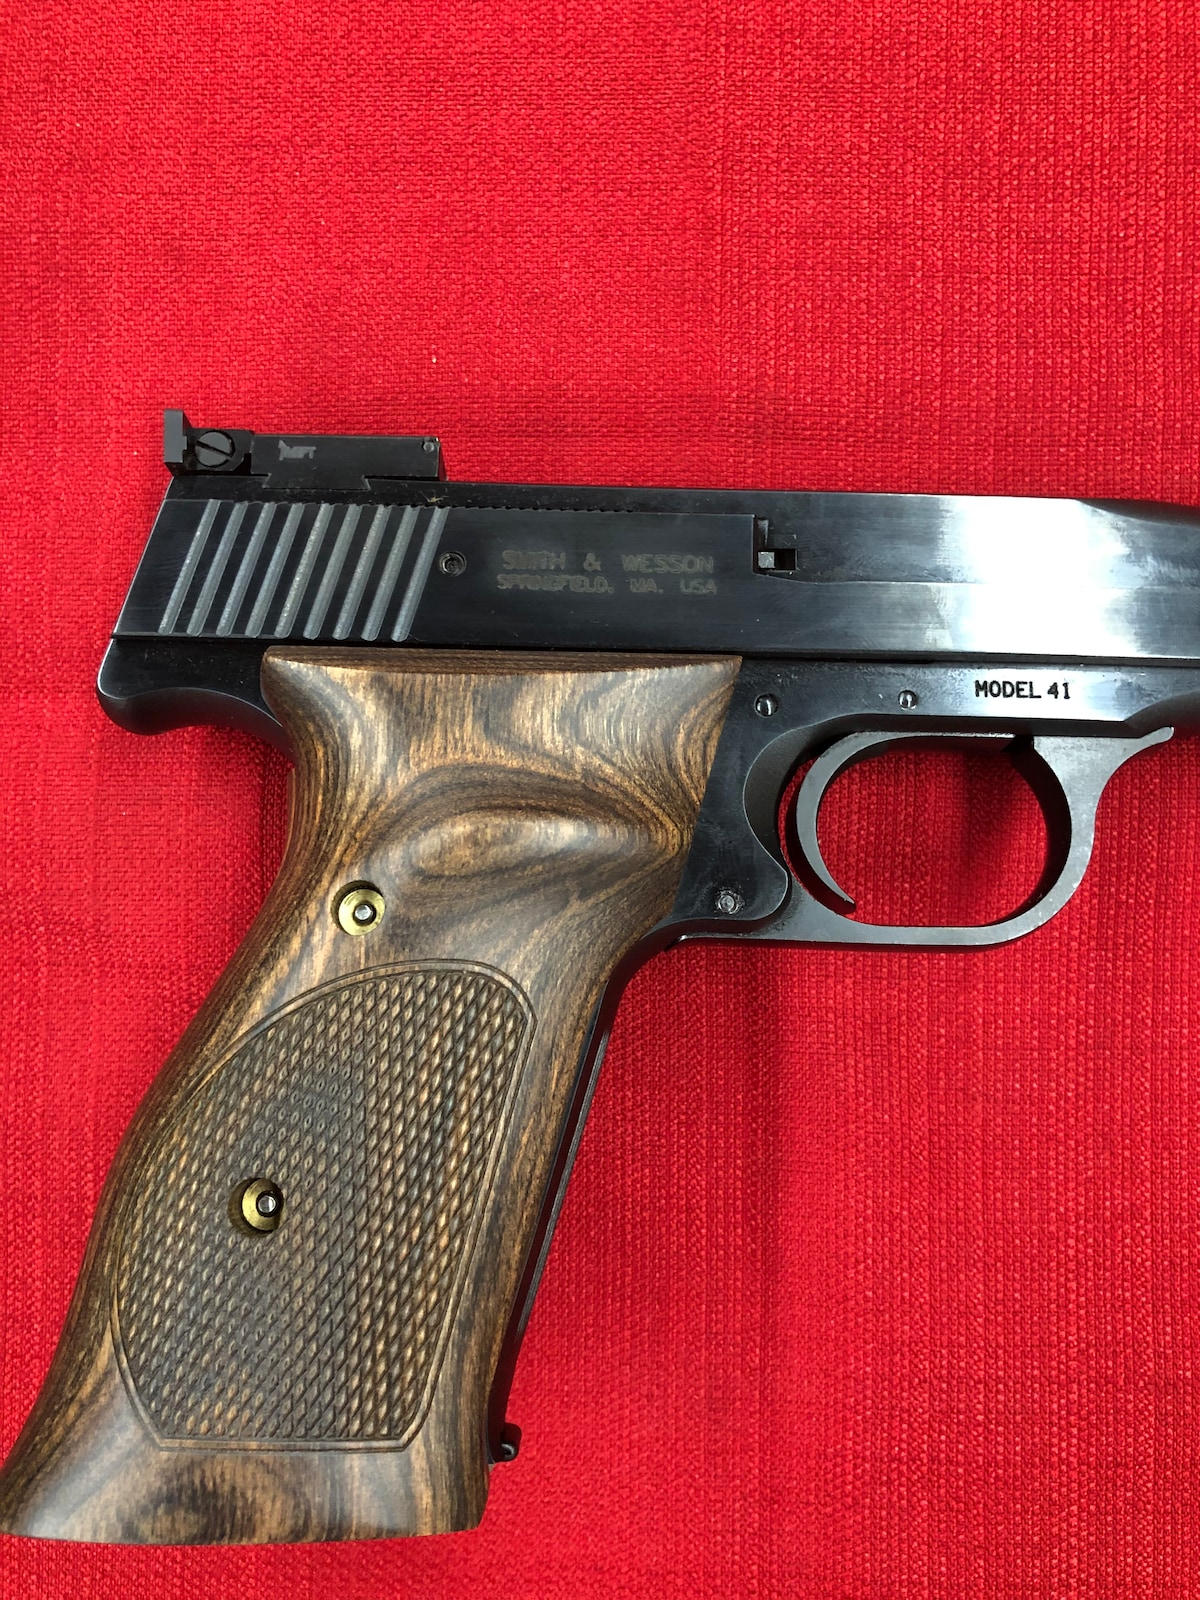 SMITH AND WESSON 41